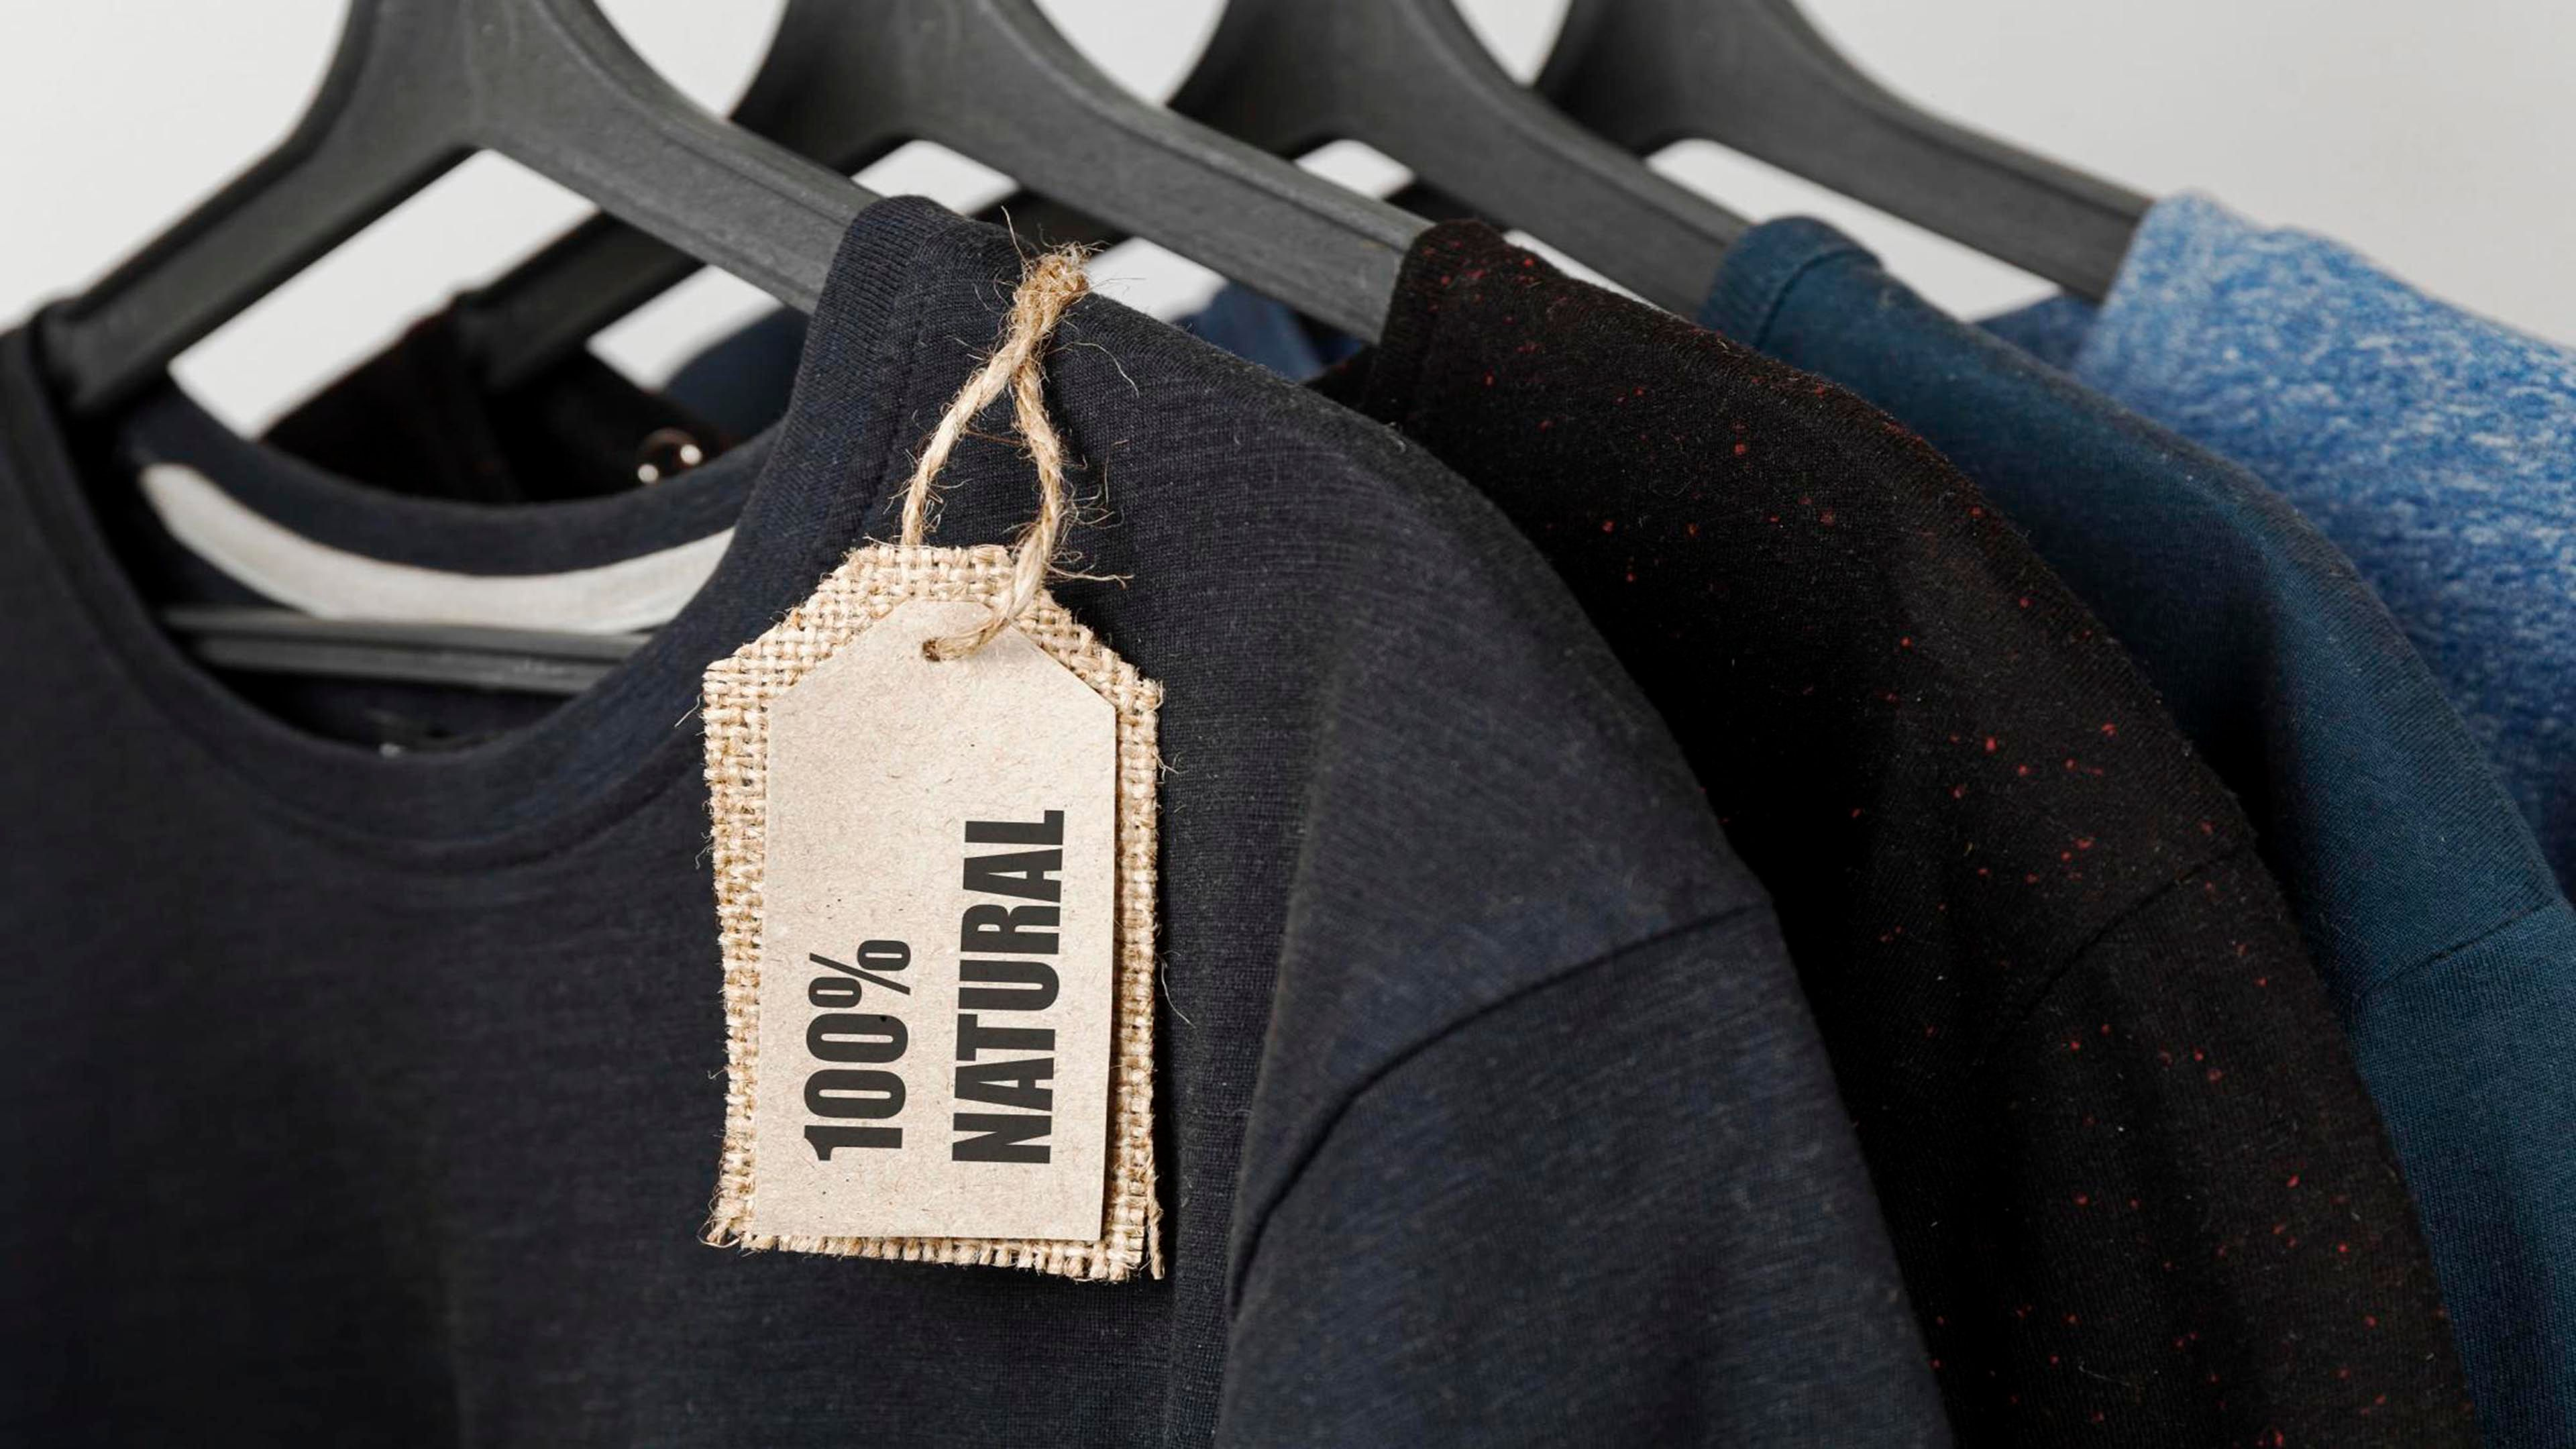 Not yet sinking in; people still confused about sustainable fashion